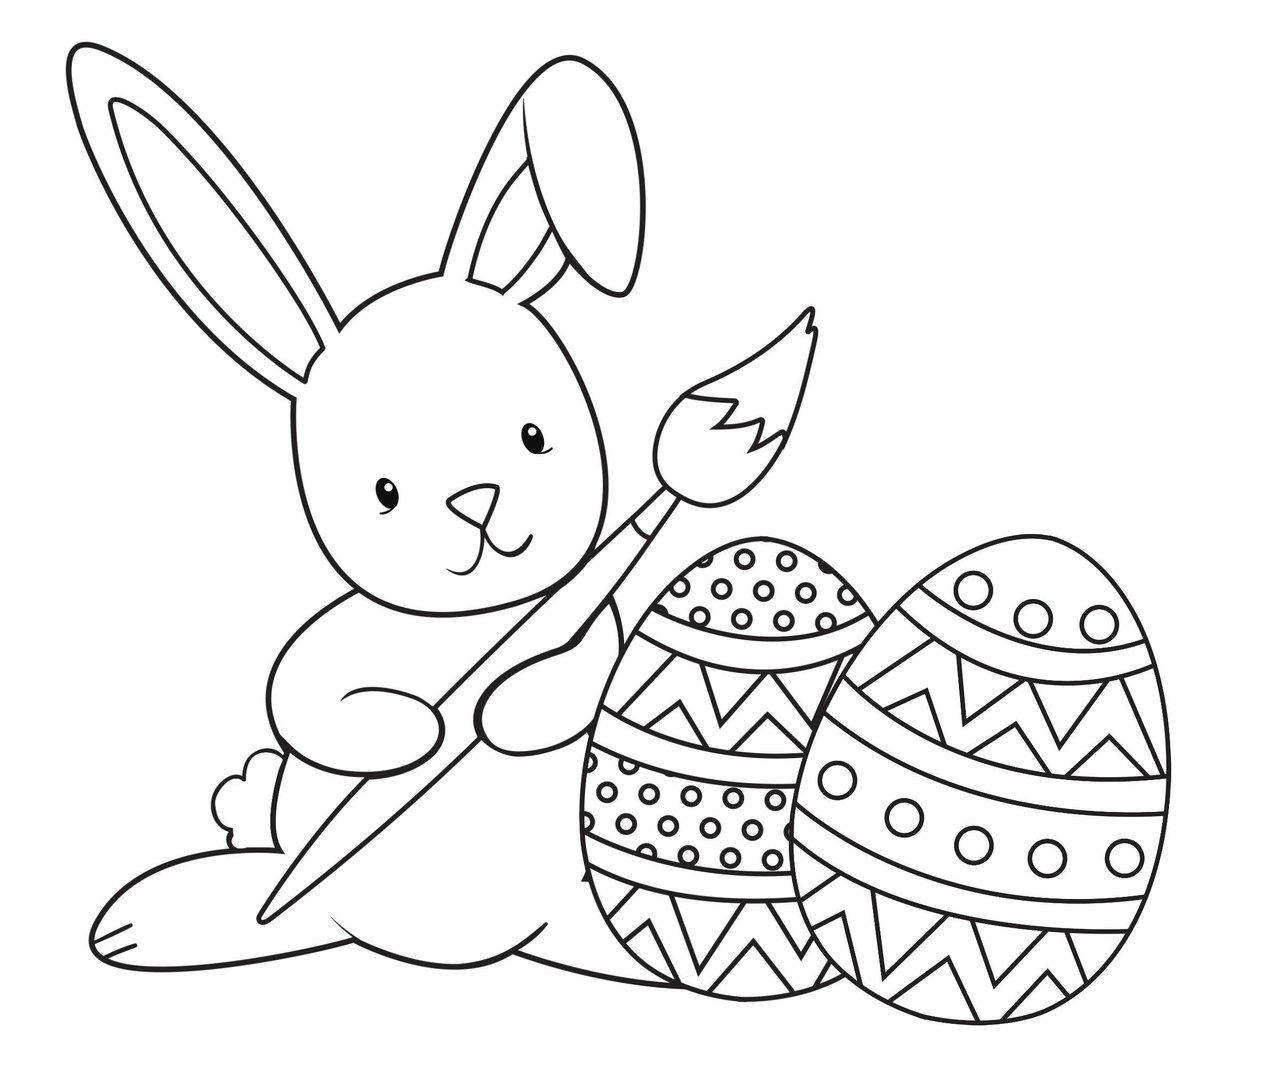 Mrs Bunny With A Basket Of Easter Eggs Coloring Page: Великодні розмальовки для дітей